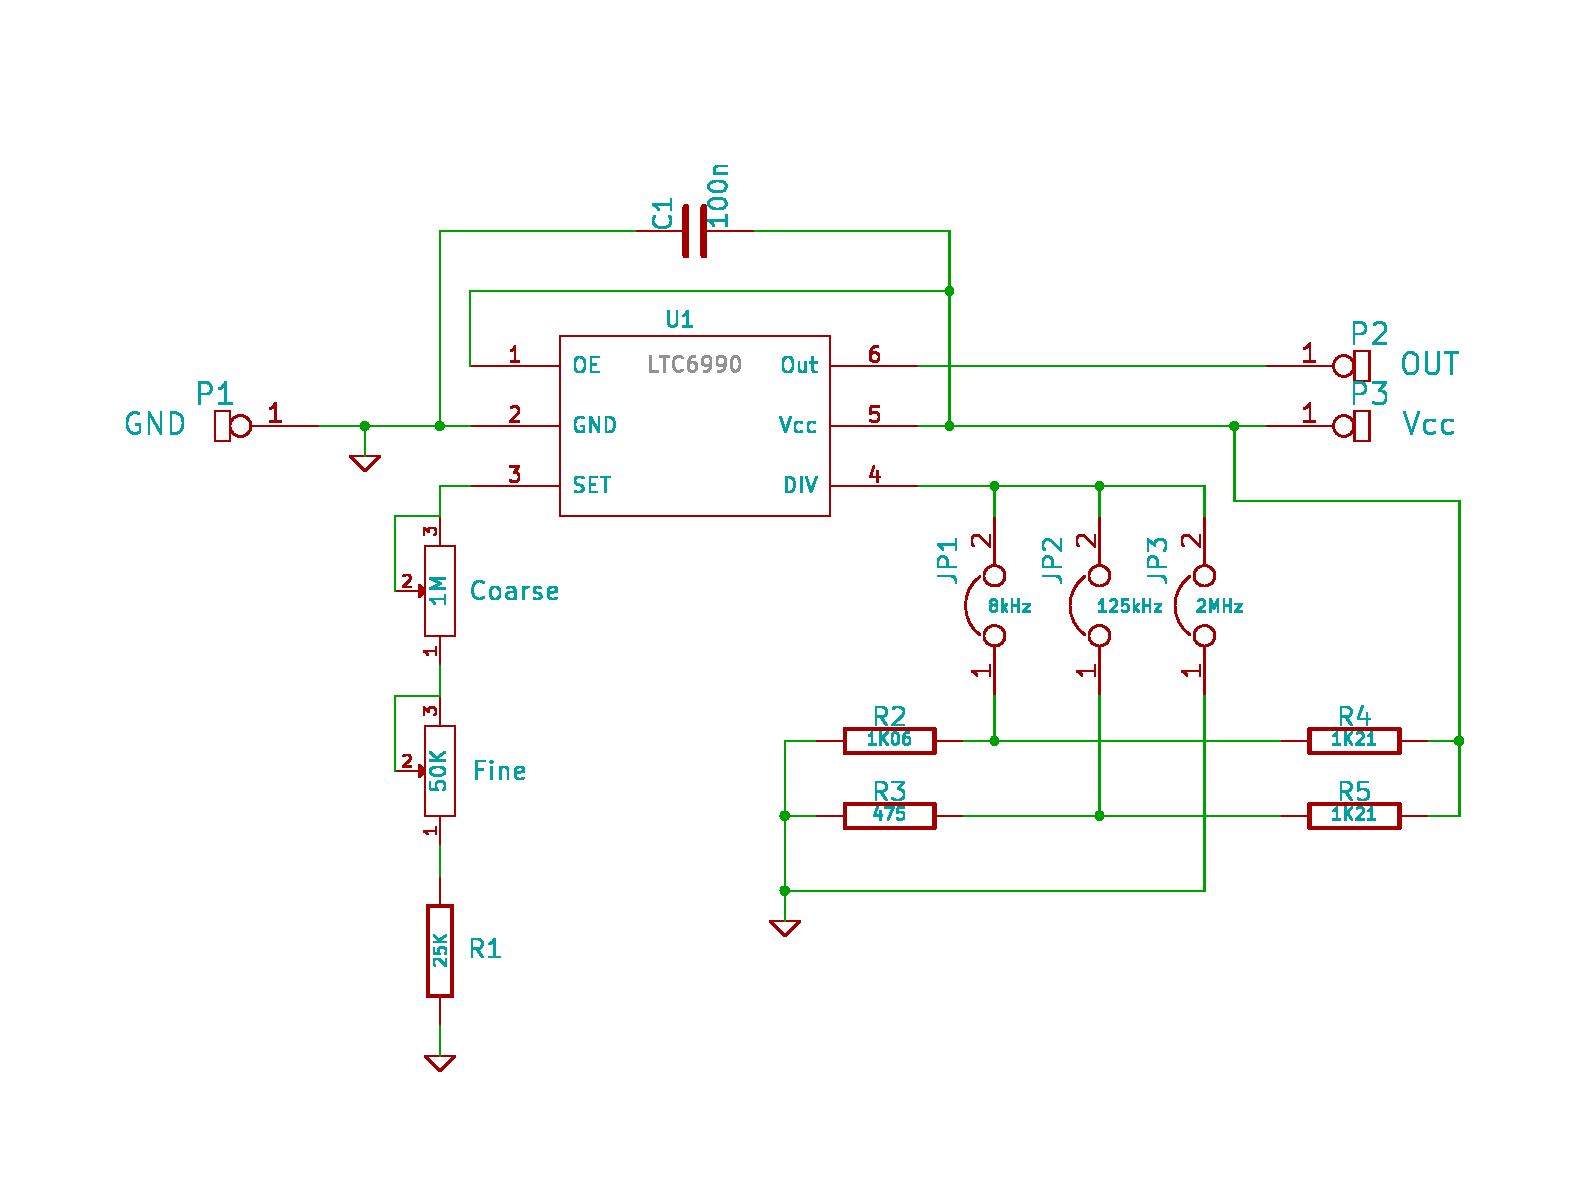 Circuit Maker Keygen Proficad 65 By Software For Electrical Diagrams Schematics Rfactor 2 Crack Download New Version Only